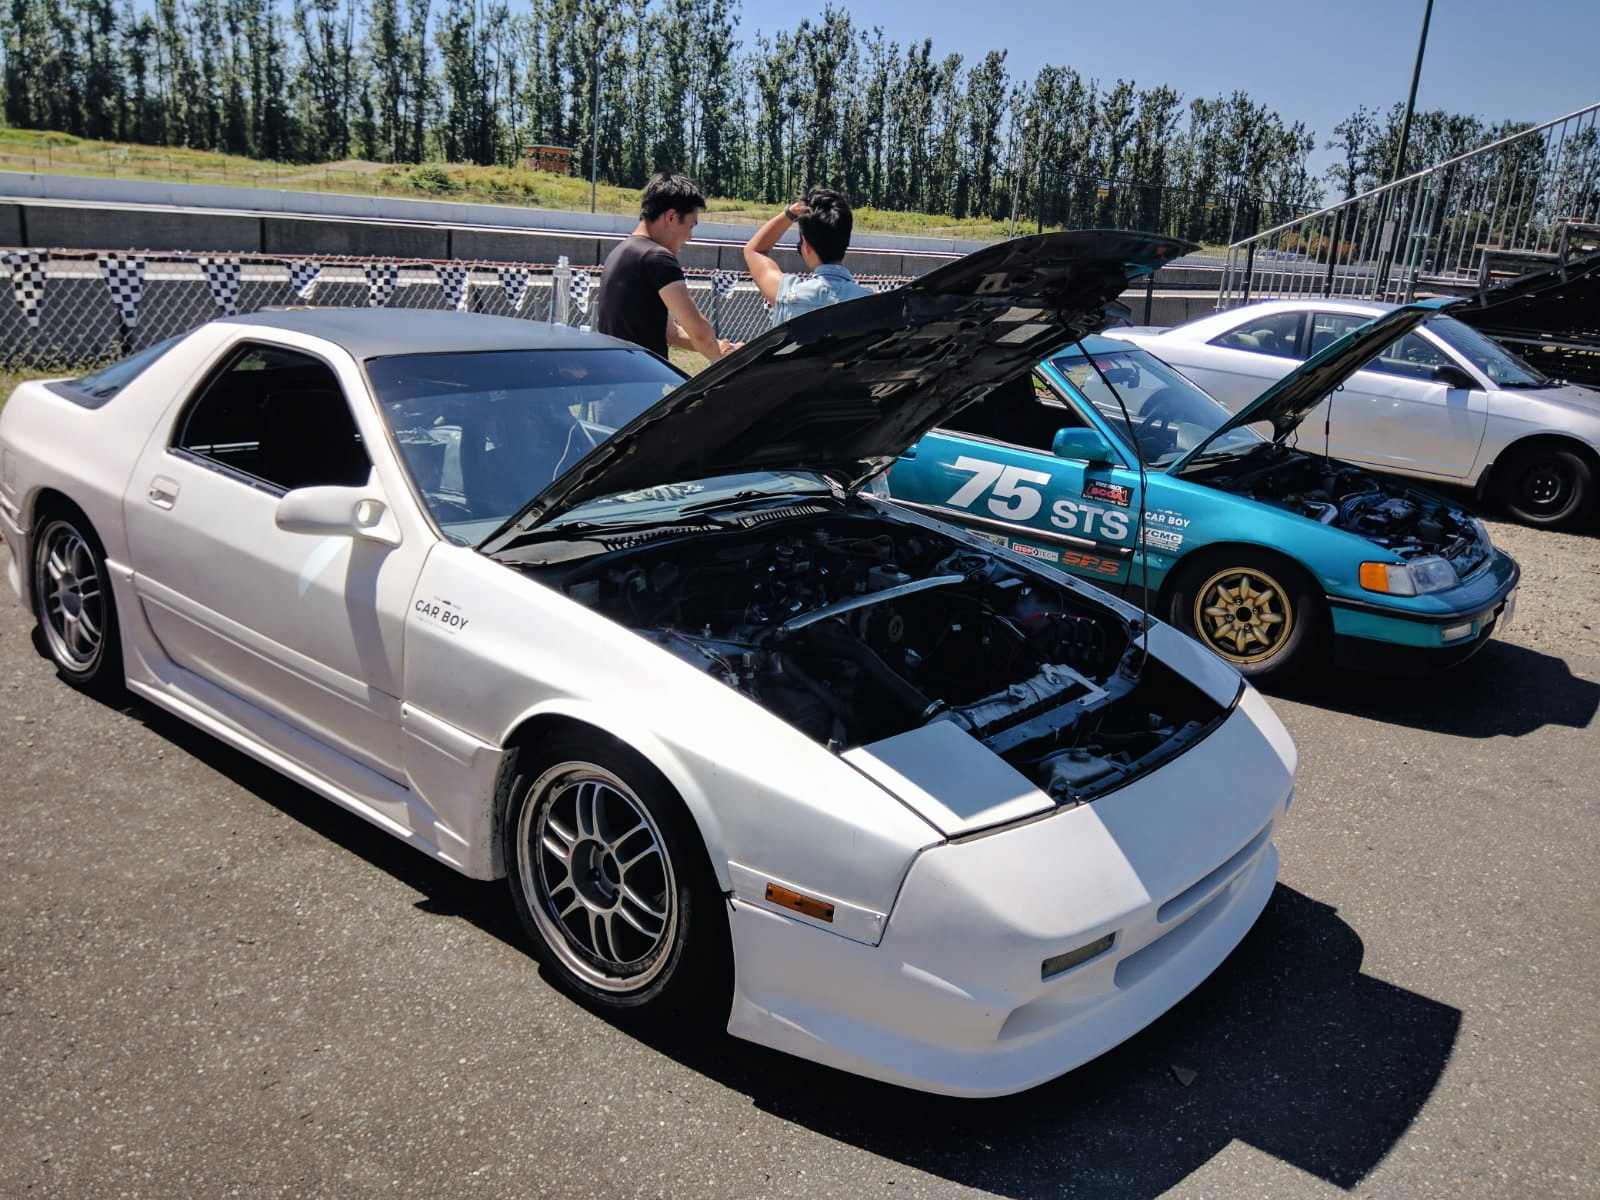 Track Day – Monday August 13